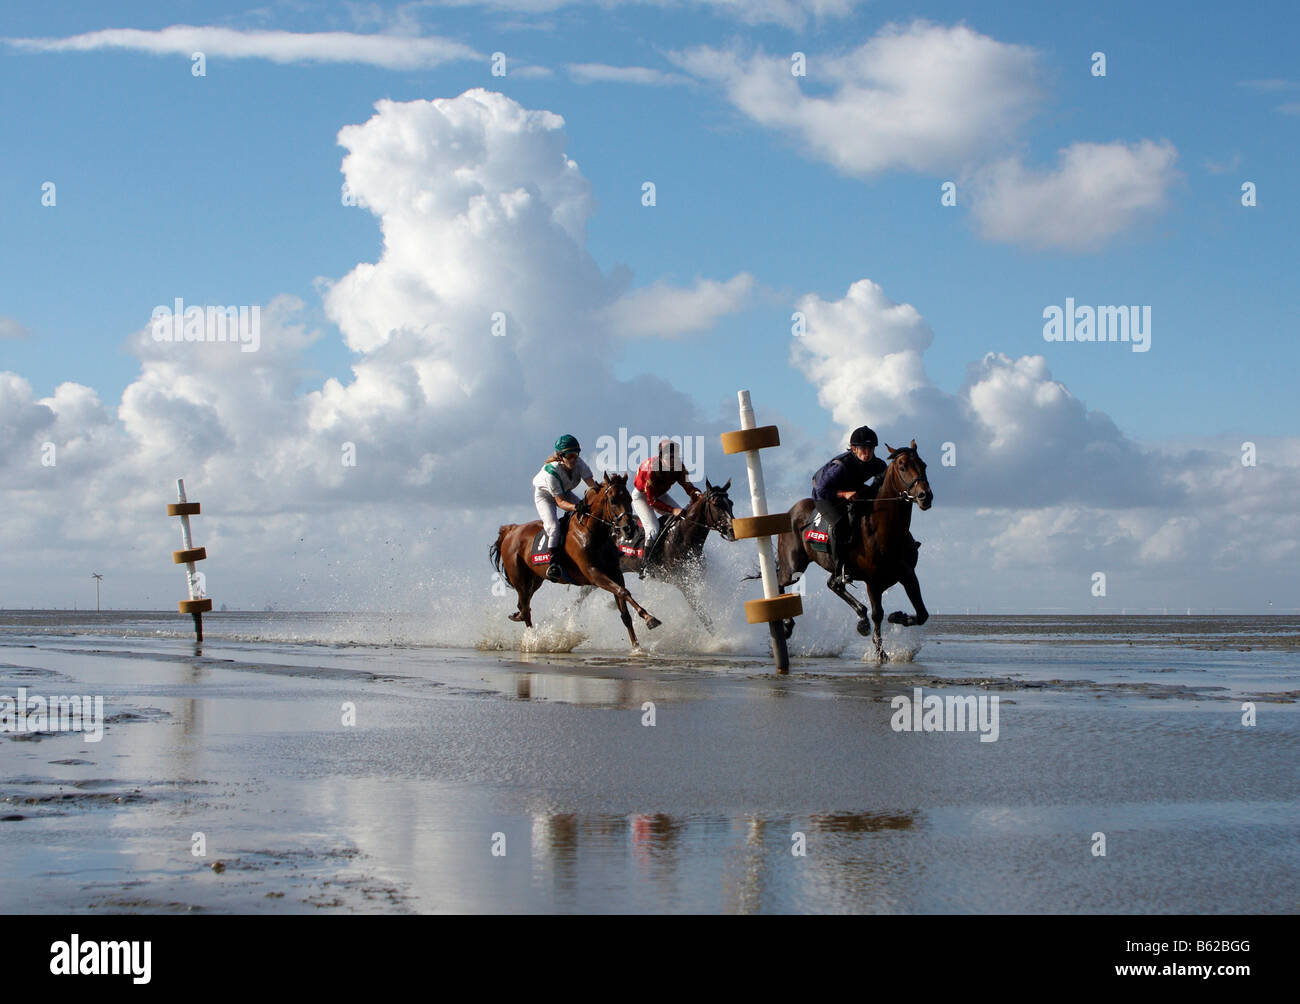 Riders, galloping, Duhner Wattrennen, Duhnen Trotting Races 2008, the only horse race in the world on the sea bed, - Stock Image